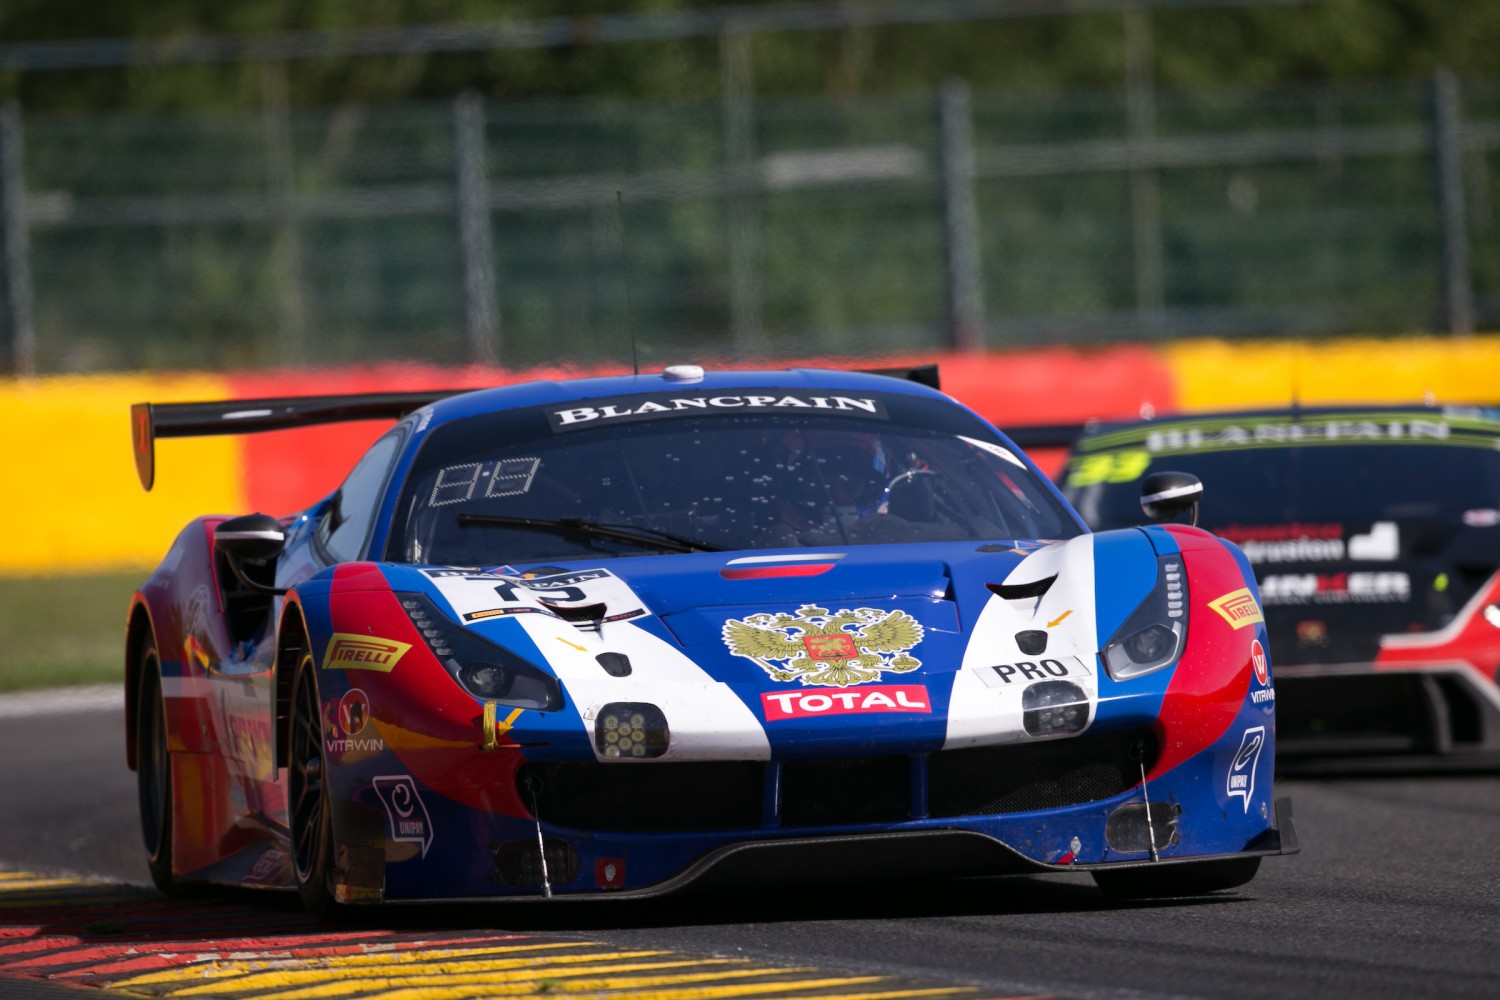 Ferrari leads Intercontinental GT Challenge on the eve of the Total 24 Hours of Spa